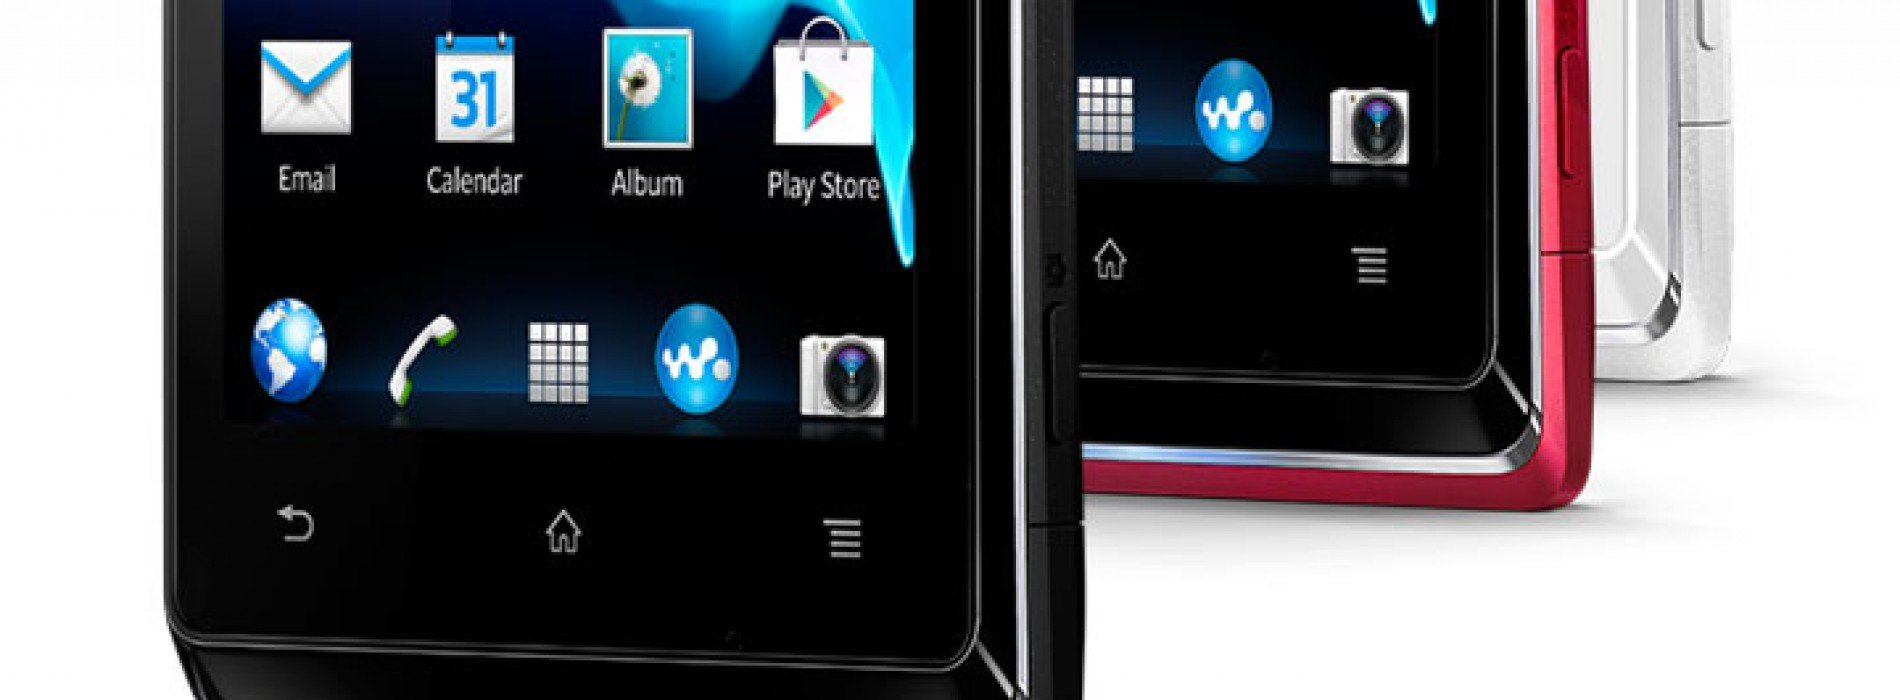 Sony announces entry-level Xperia E for early 2013